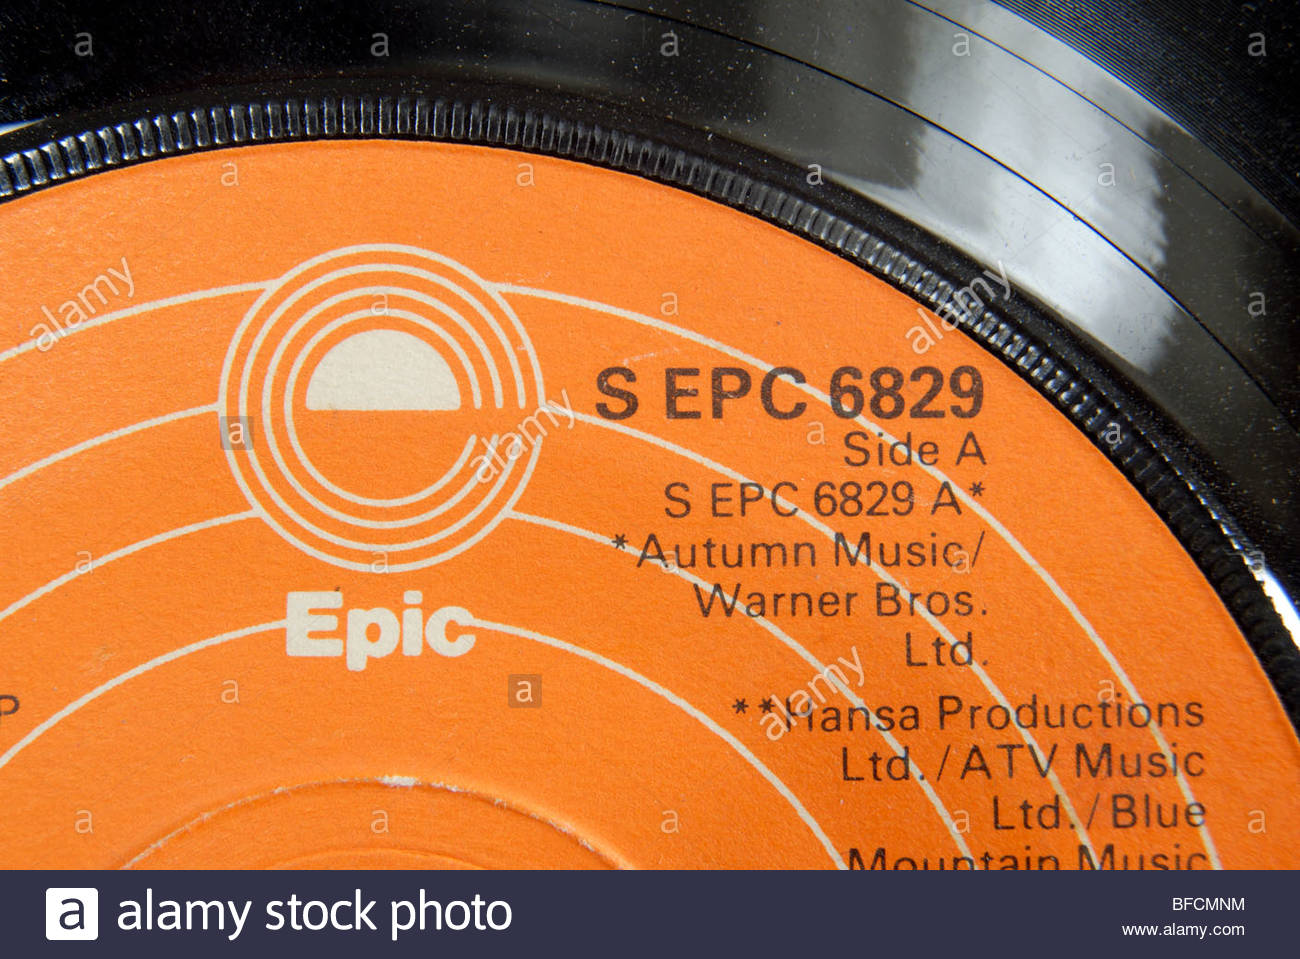 Label of an Epic records 45 rpm record. - Stock Image